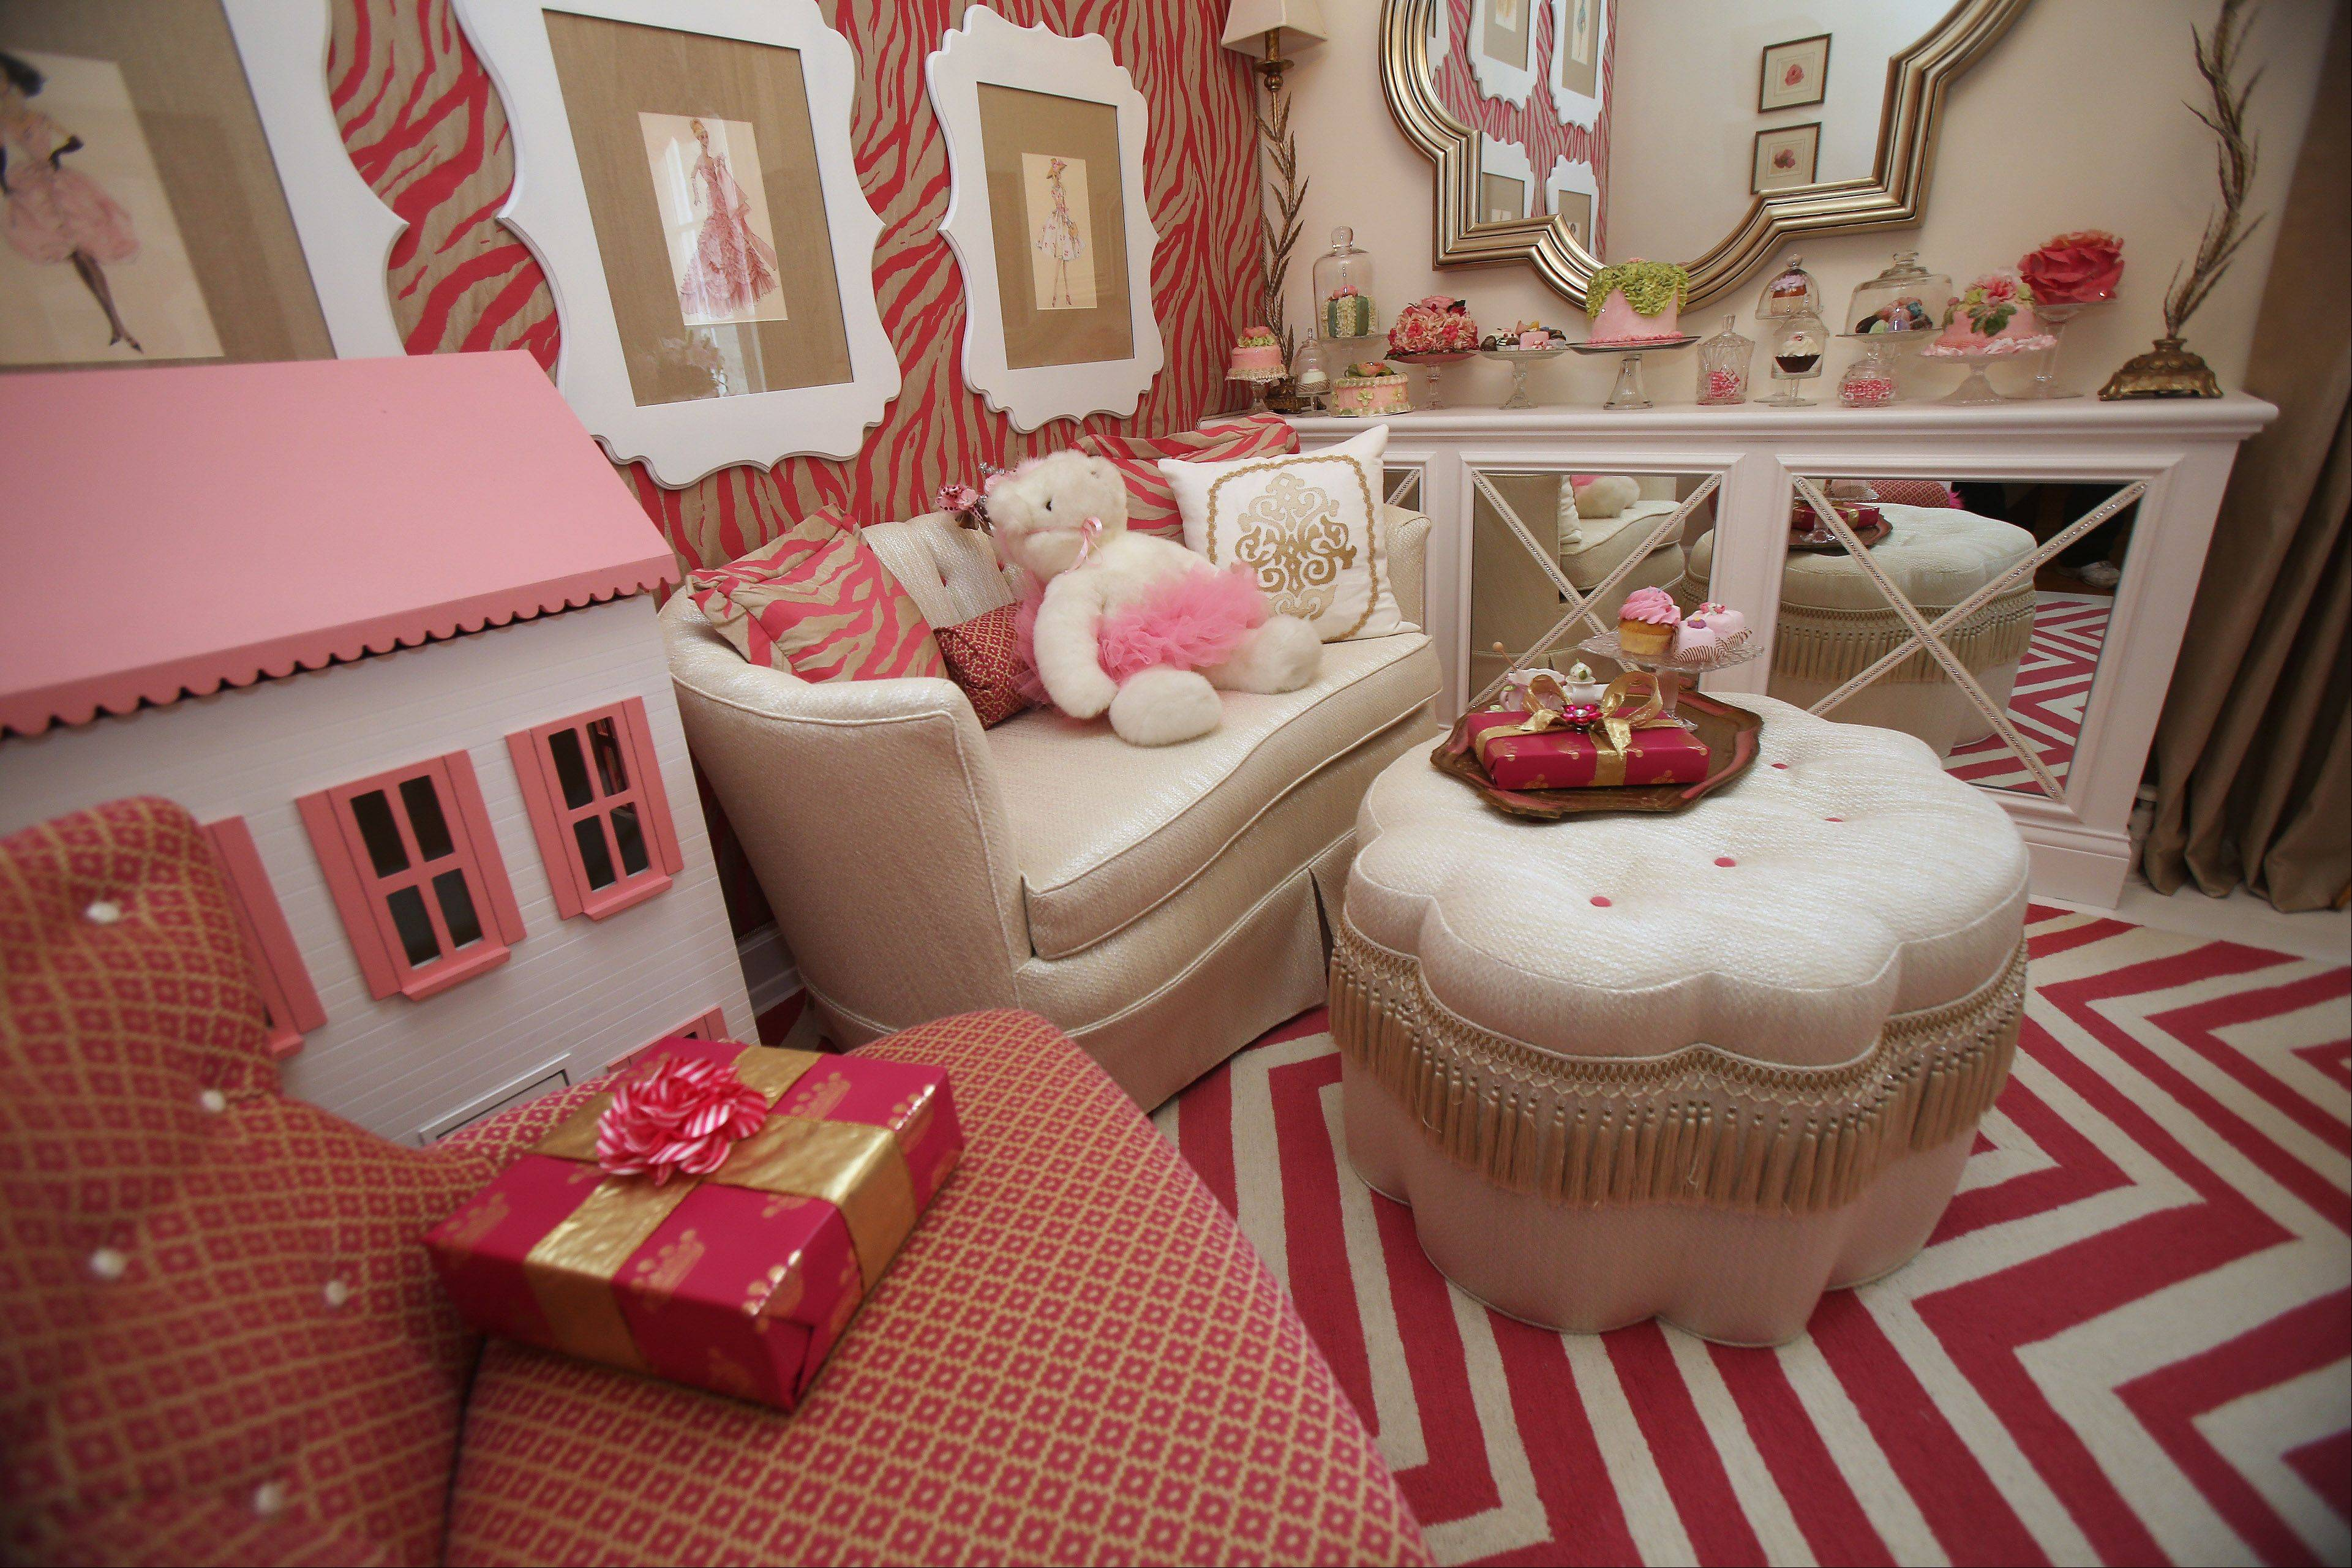 Kendelle Cornette of Lake Forest decided the Girl's Playroom needs pink.